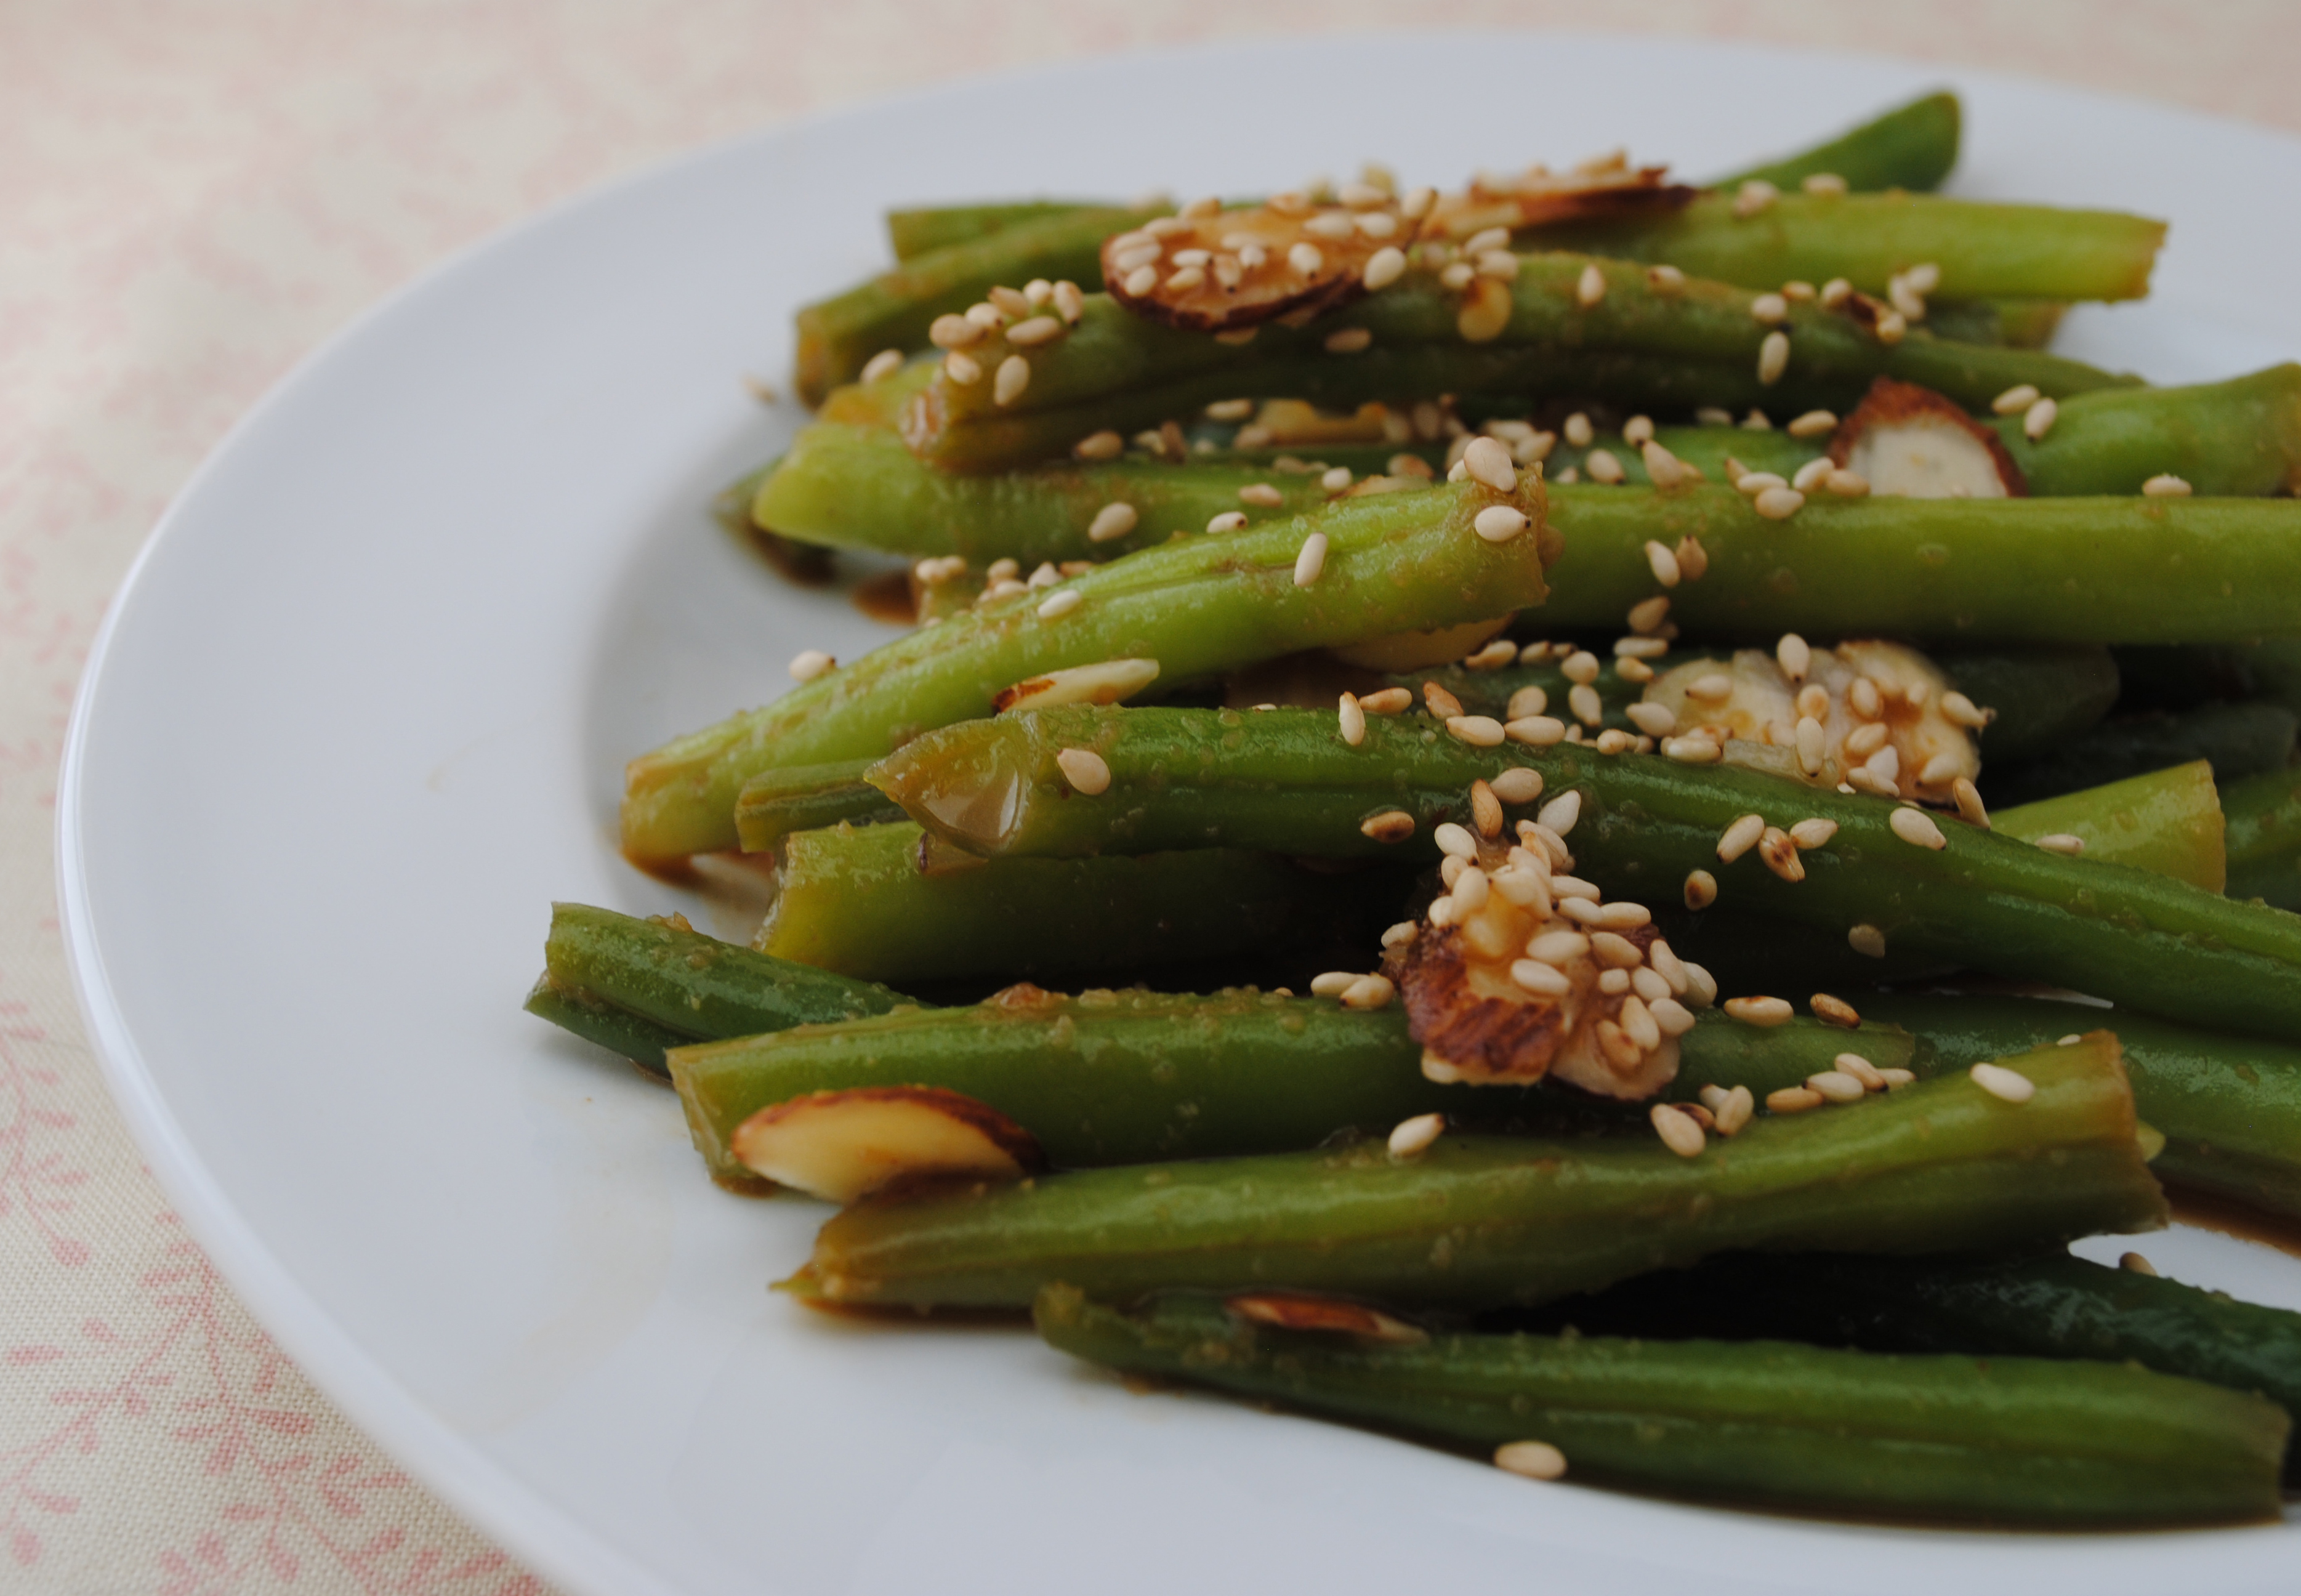 Vegan Szechuan Green Beans with Slivered Almonds